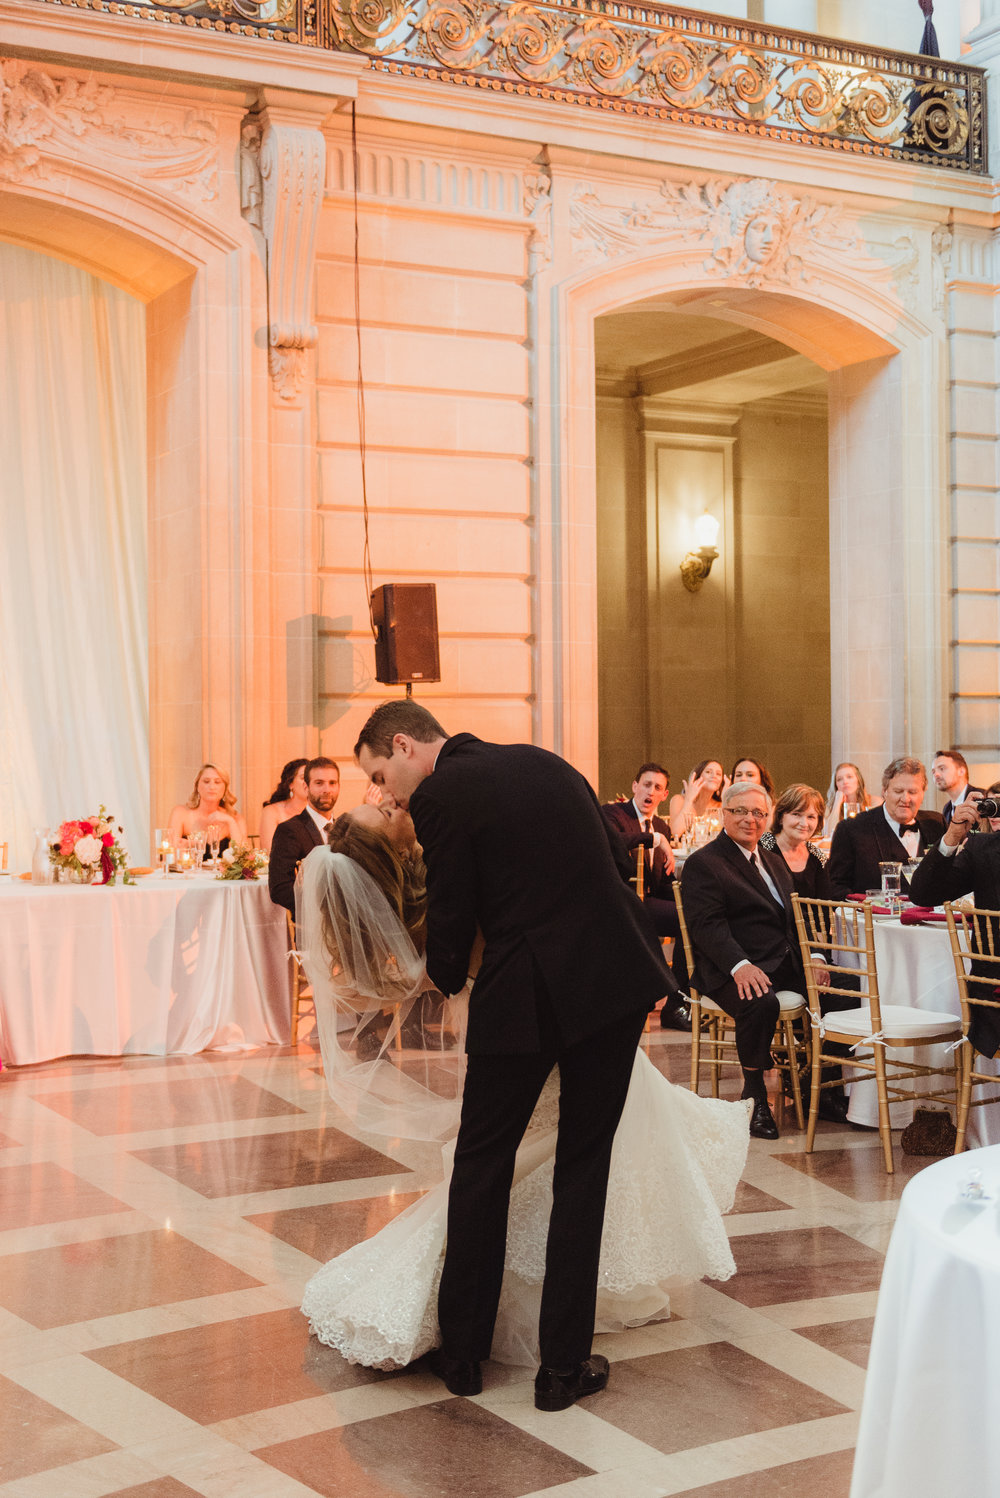 78-elegant-san-francisco-city-hall-wedding-vivianchen-0866.jpg